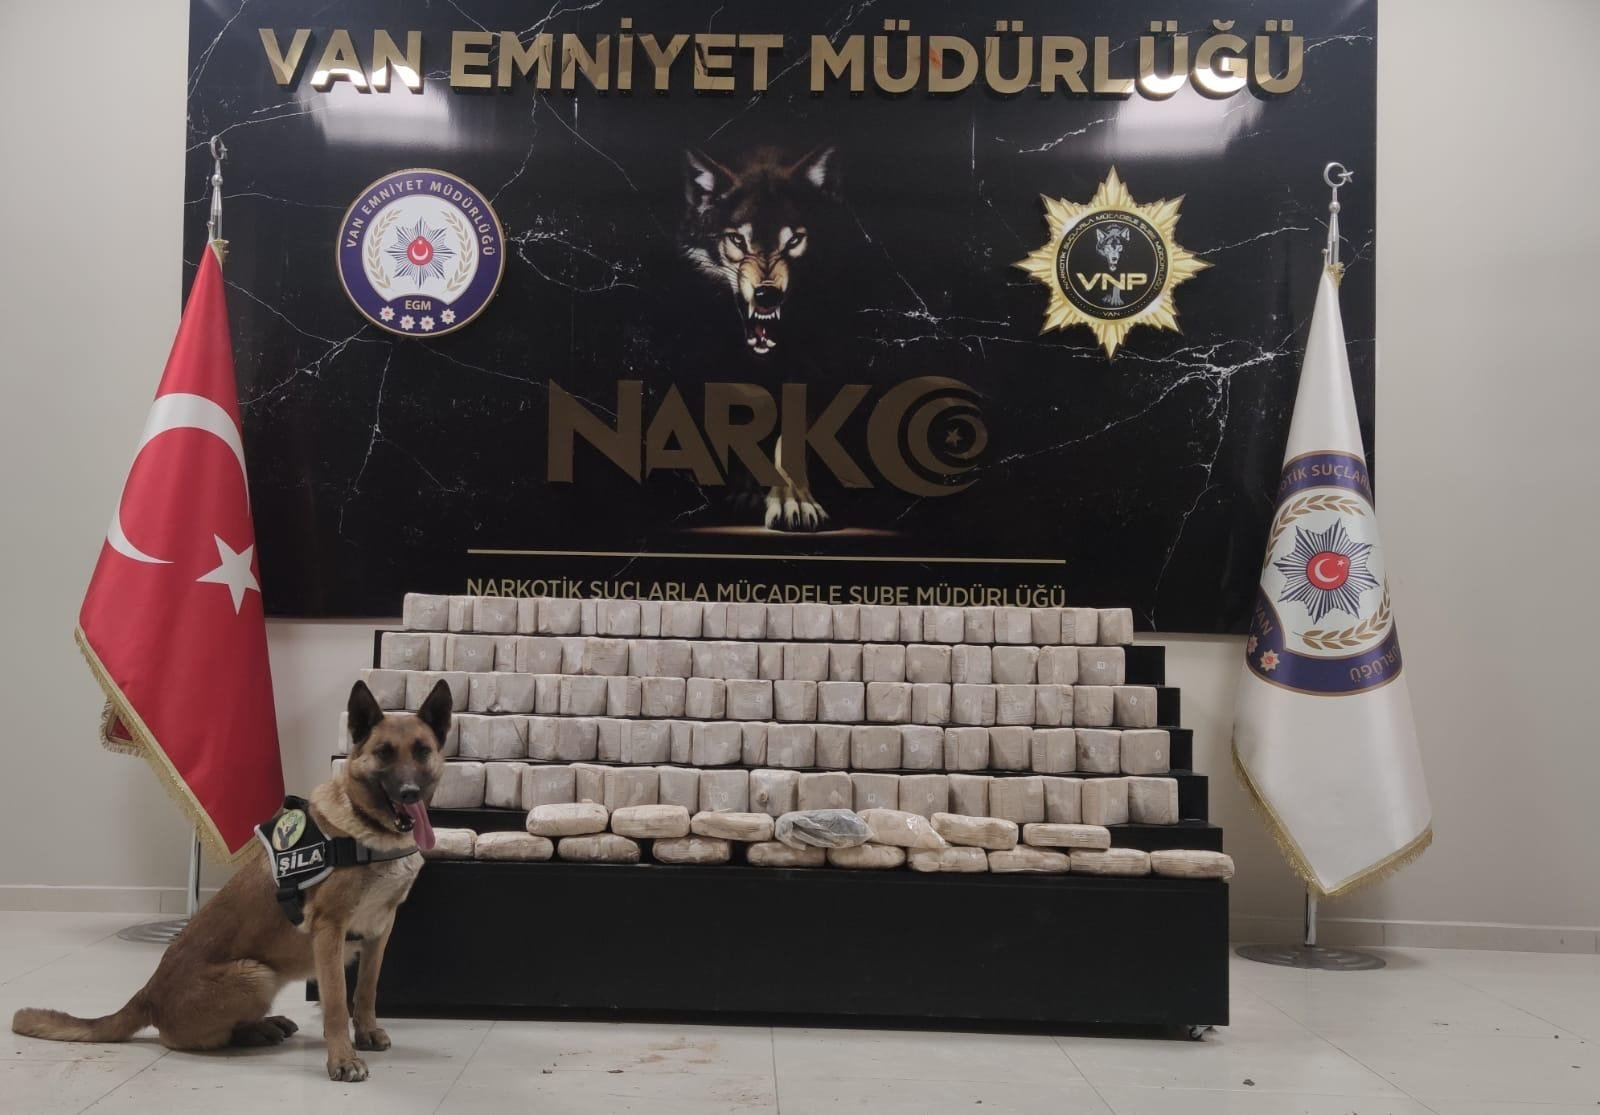 A police dog poses with drugs it helped seize, in Van, eastern Turkey, April 9, 2021. (AA PHOTO)